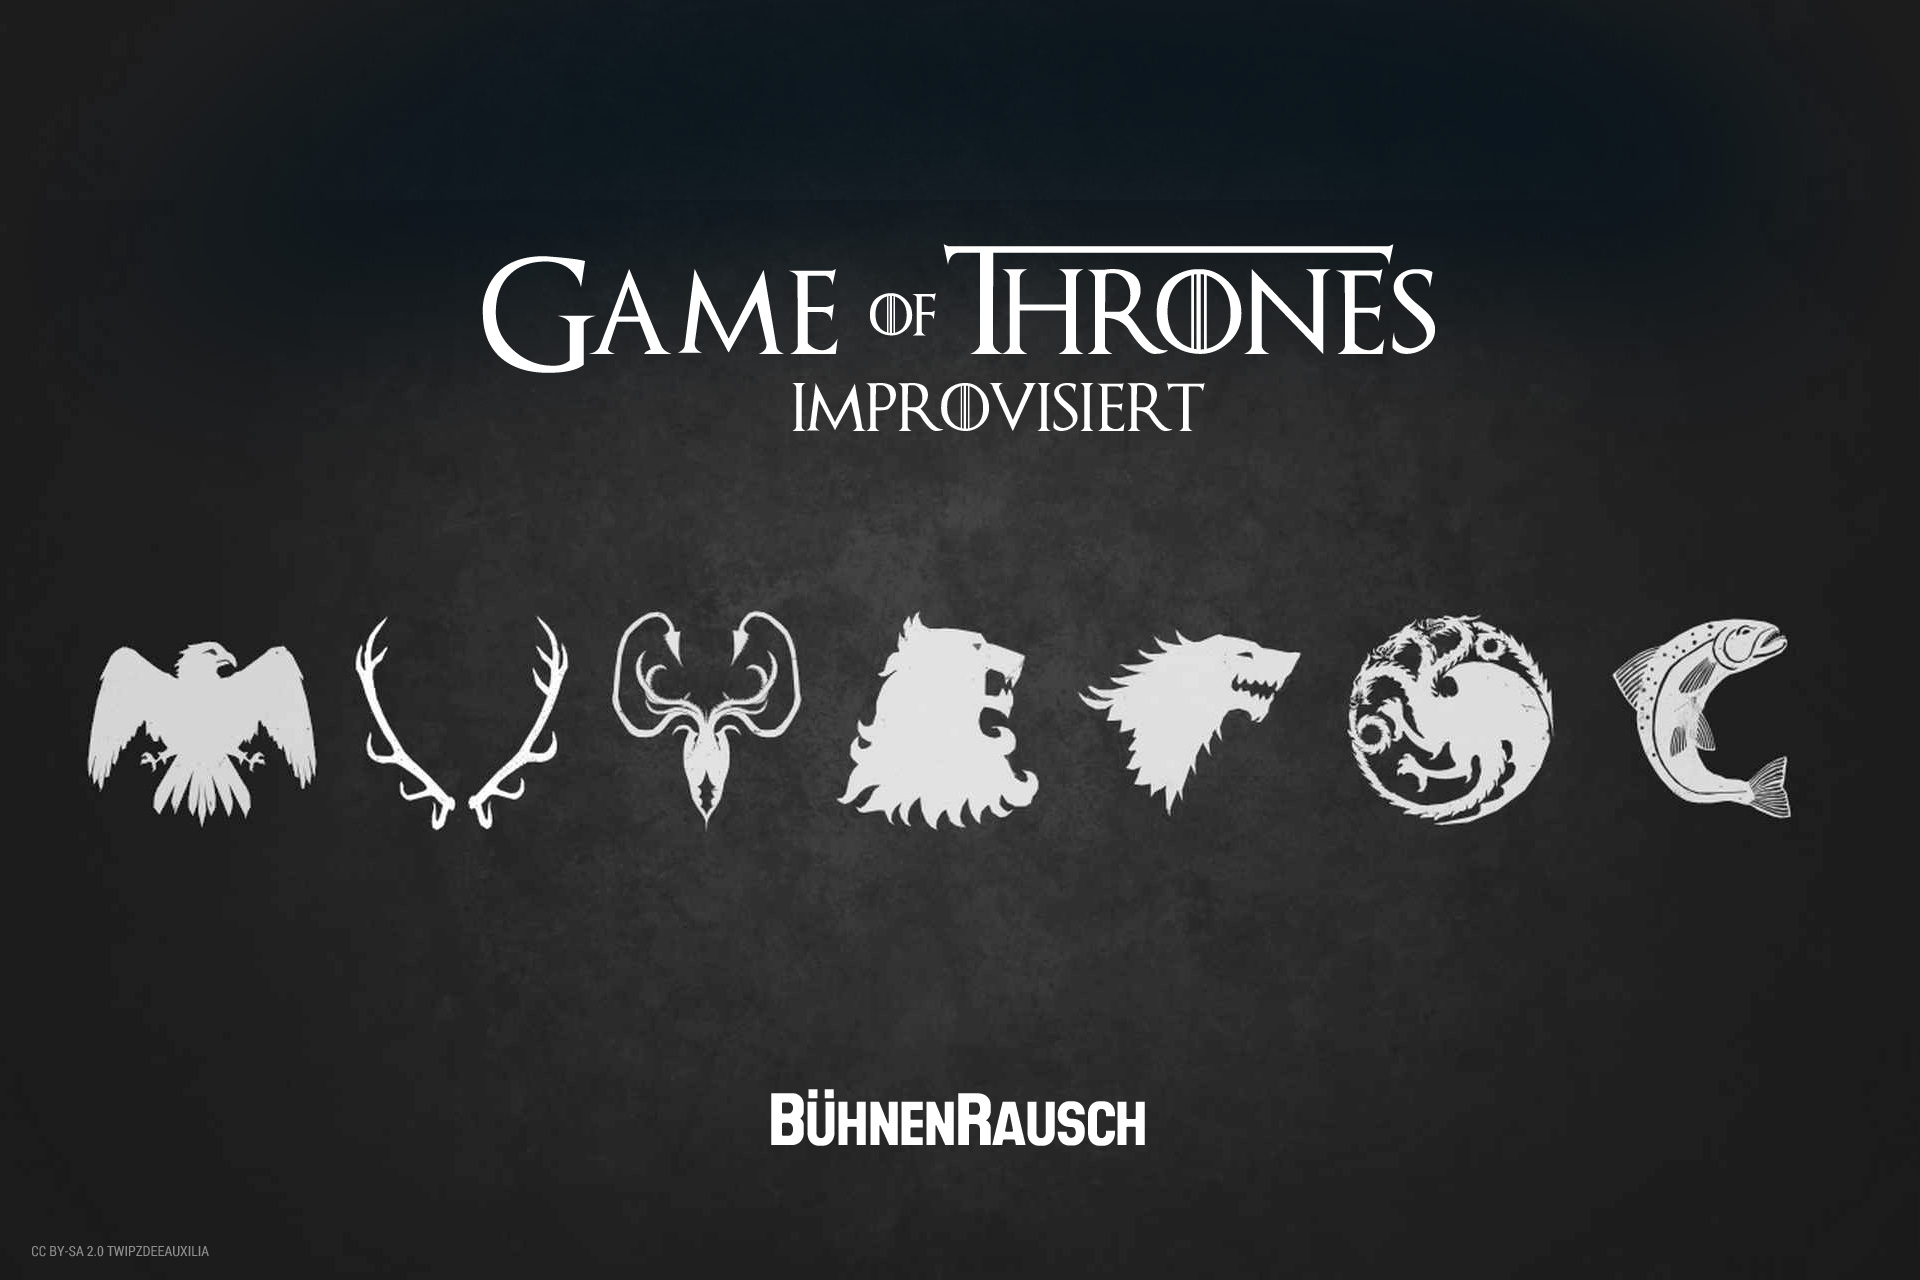 Game of Thrones ... improvisiert